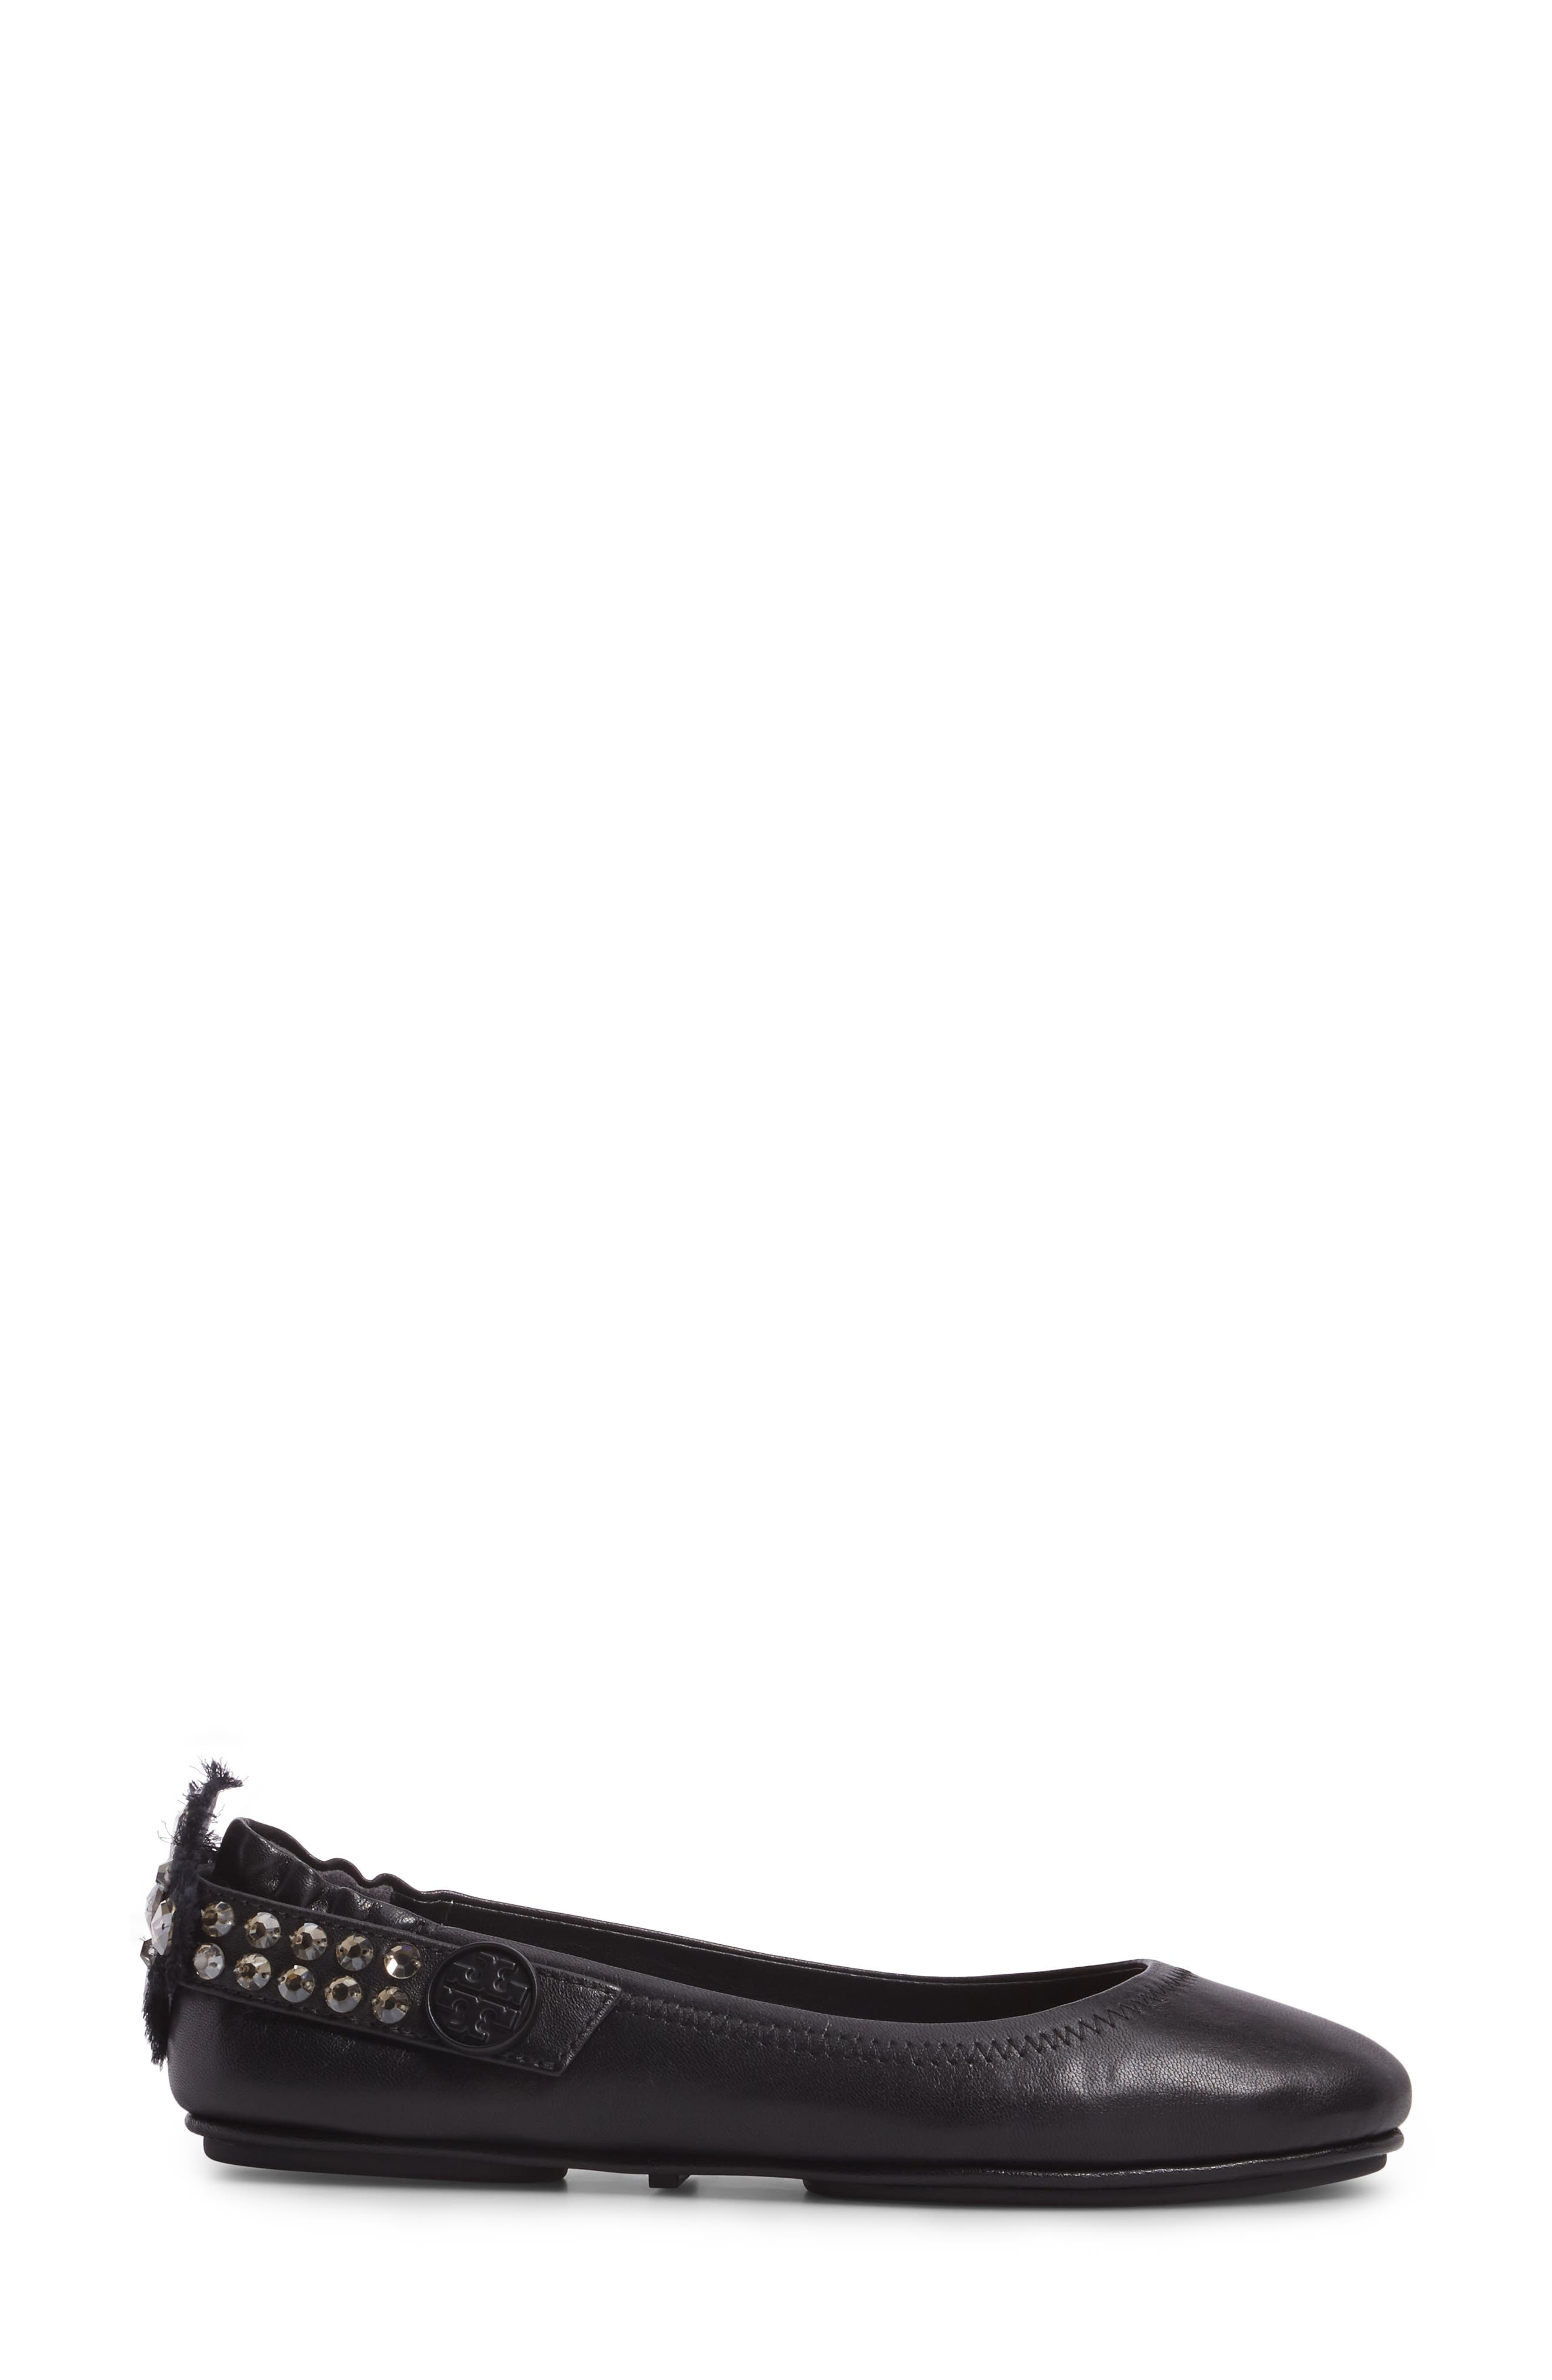 Minnie Embellished Convertible Strap Ballet Flat,                             Alternate thumbnail 3, color,                             Black/ Clear